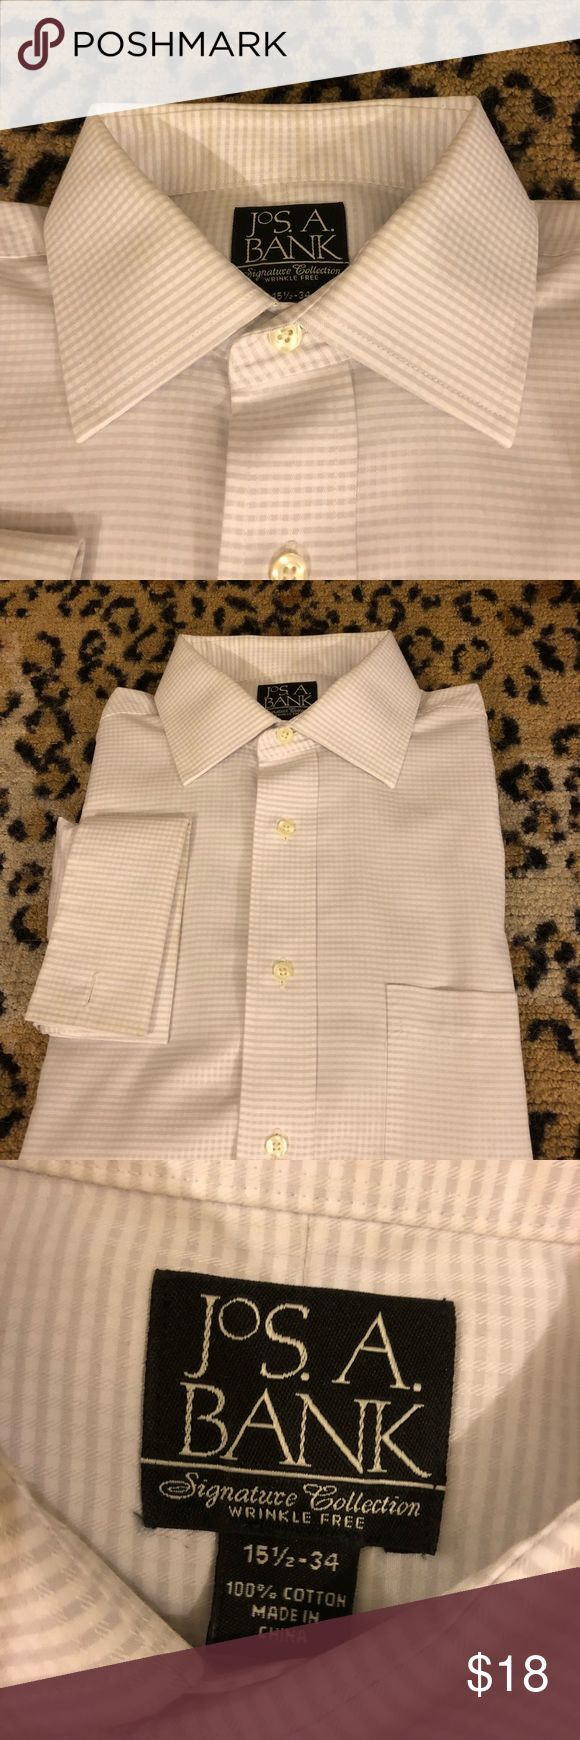 Jos A Bank White Check French Cuff Shirt 15.5-34 Jos A Bank Signature Collection White and Grey Check French Cuff Dress Shirt size 15.5-34! Like new!  Please make reasonable offers and bundle! Ask questions :) Jos. A. Bank Shirts Dress Shirts